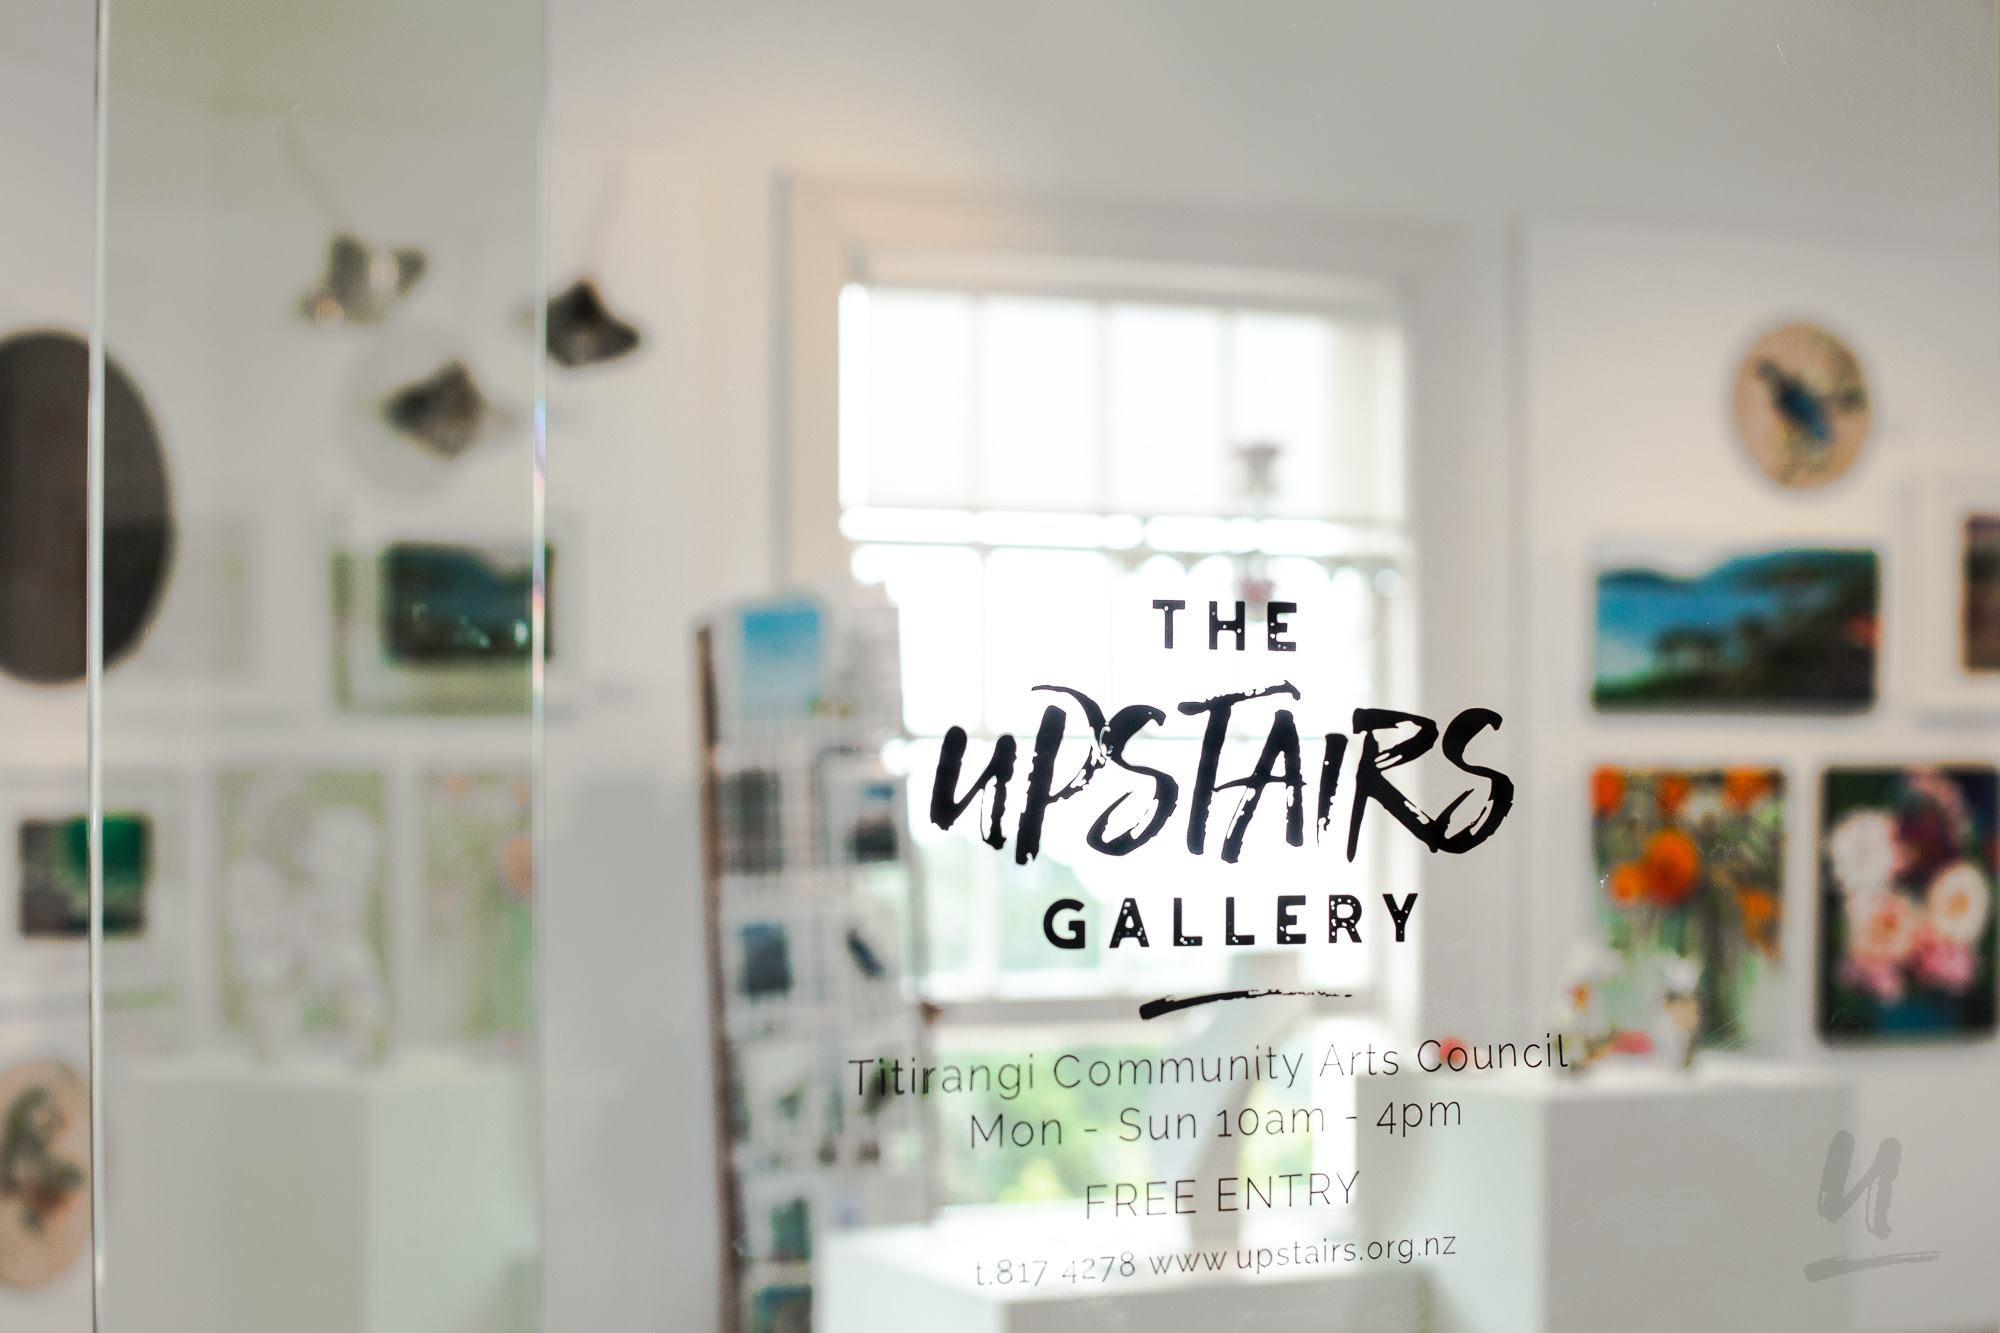 upstairs gallery window with signage